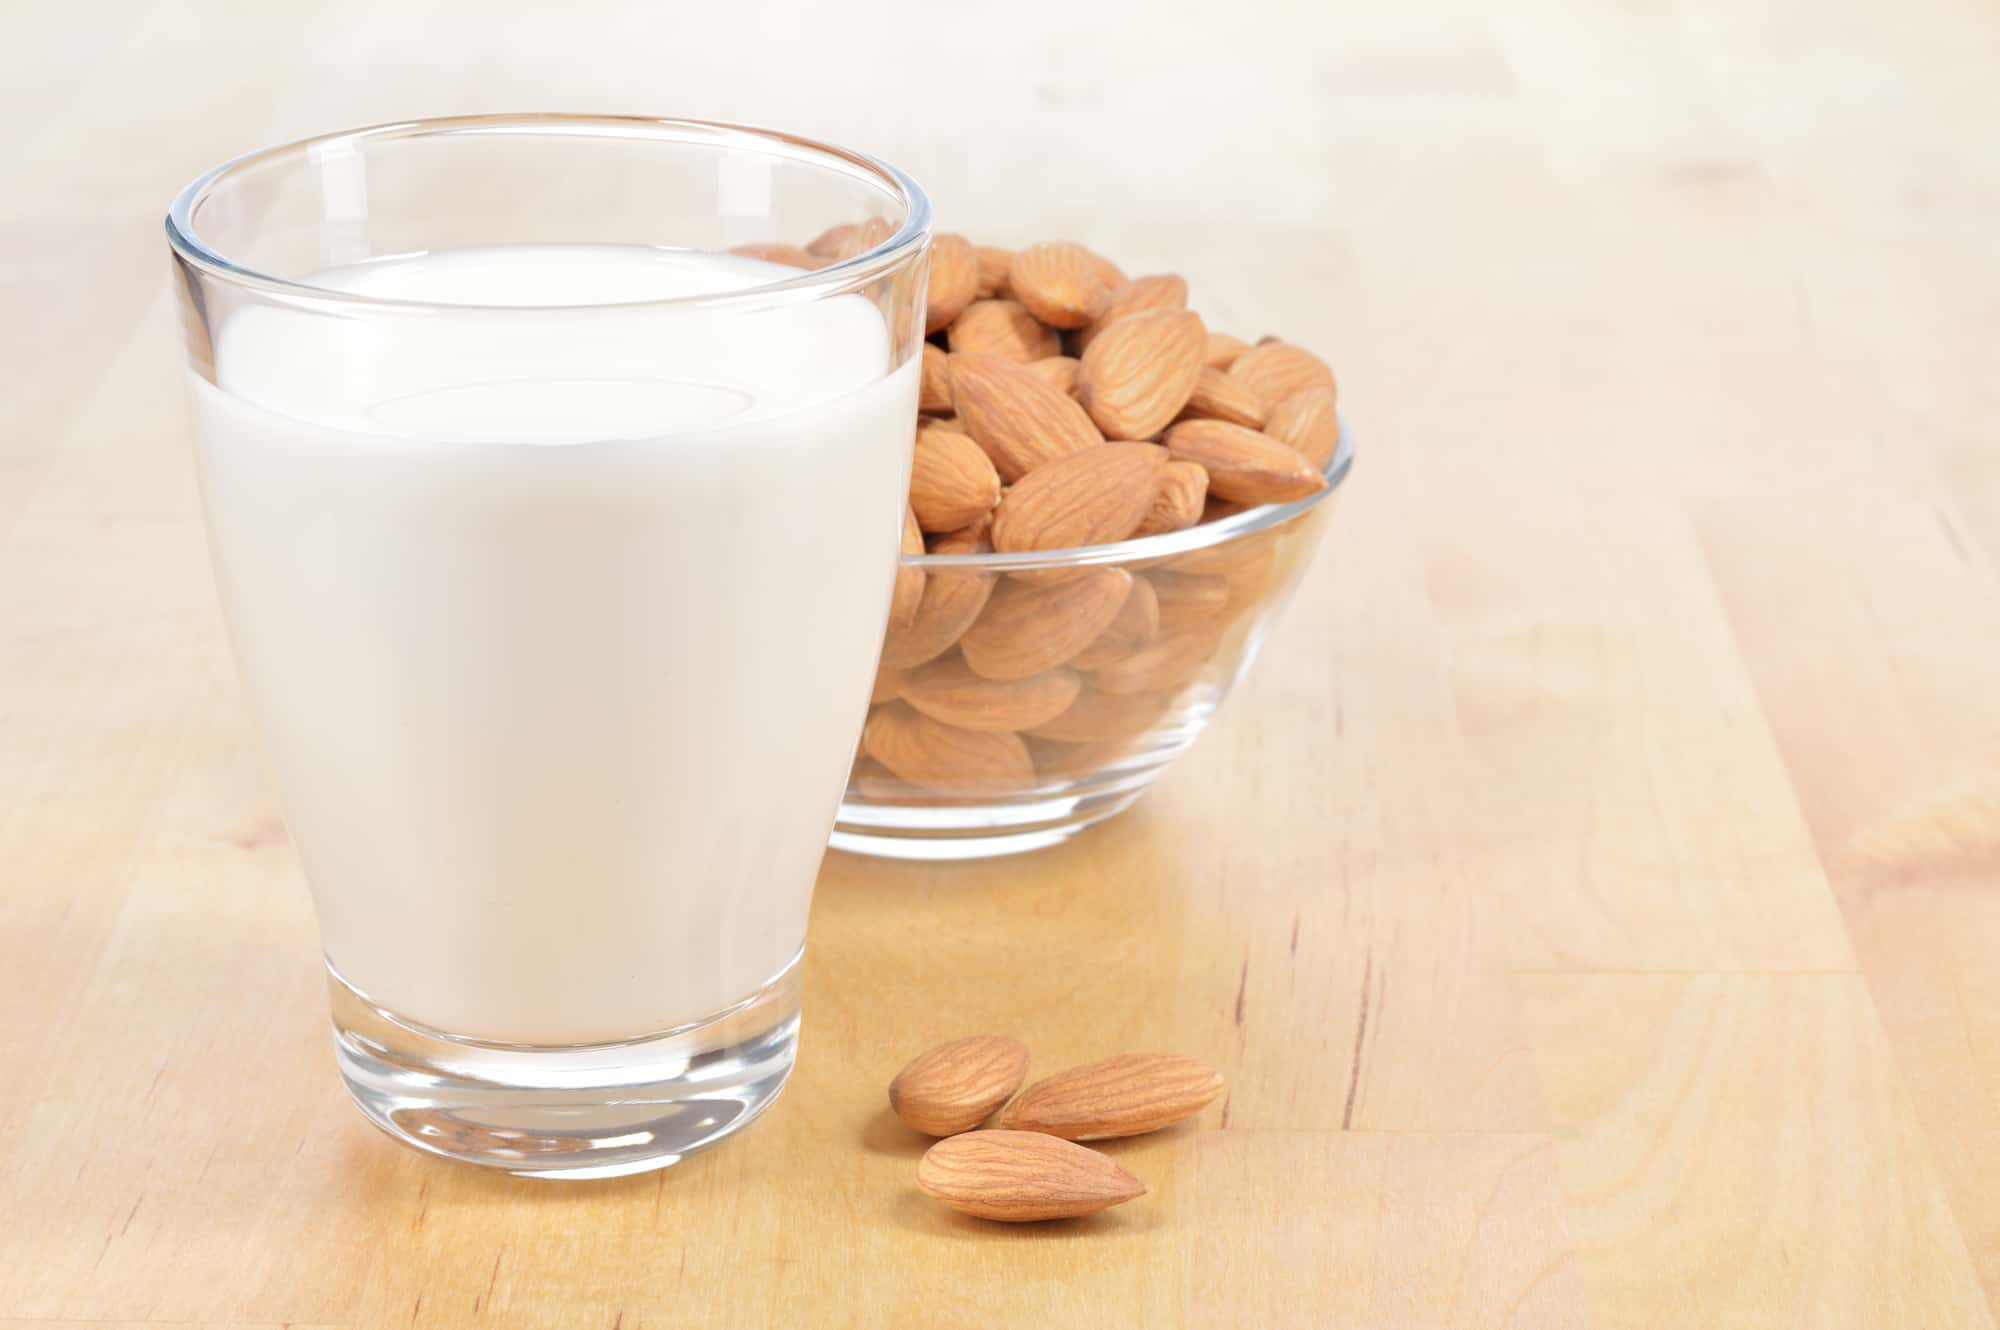 A glass of almond milk next to some almonds